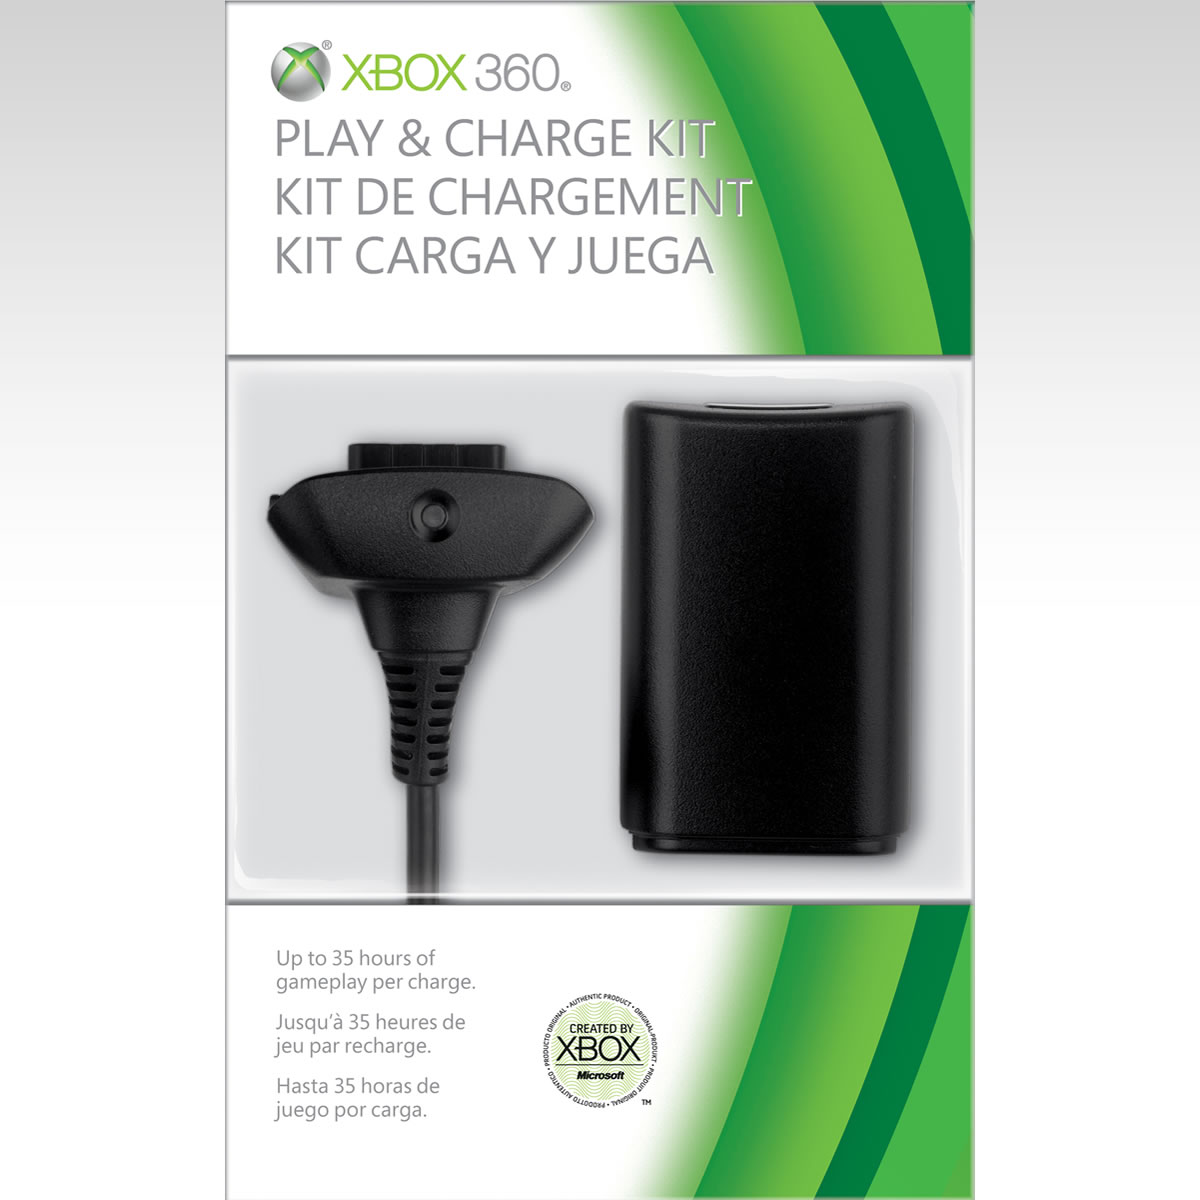 MICROSOFT OFFICIAL XBOX 360 PLAY & CHARGE KIT Black - MICROSOFT ΕΠΙΣΗΜΟ XBOX 360 PLAY & CHARGE KIT ΜΑΥΡΟ (XBOX 360)